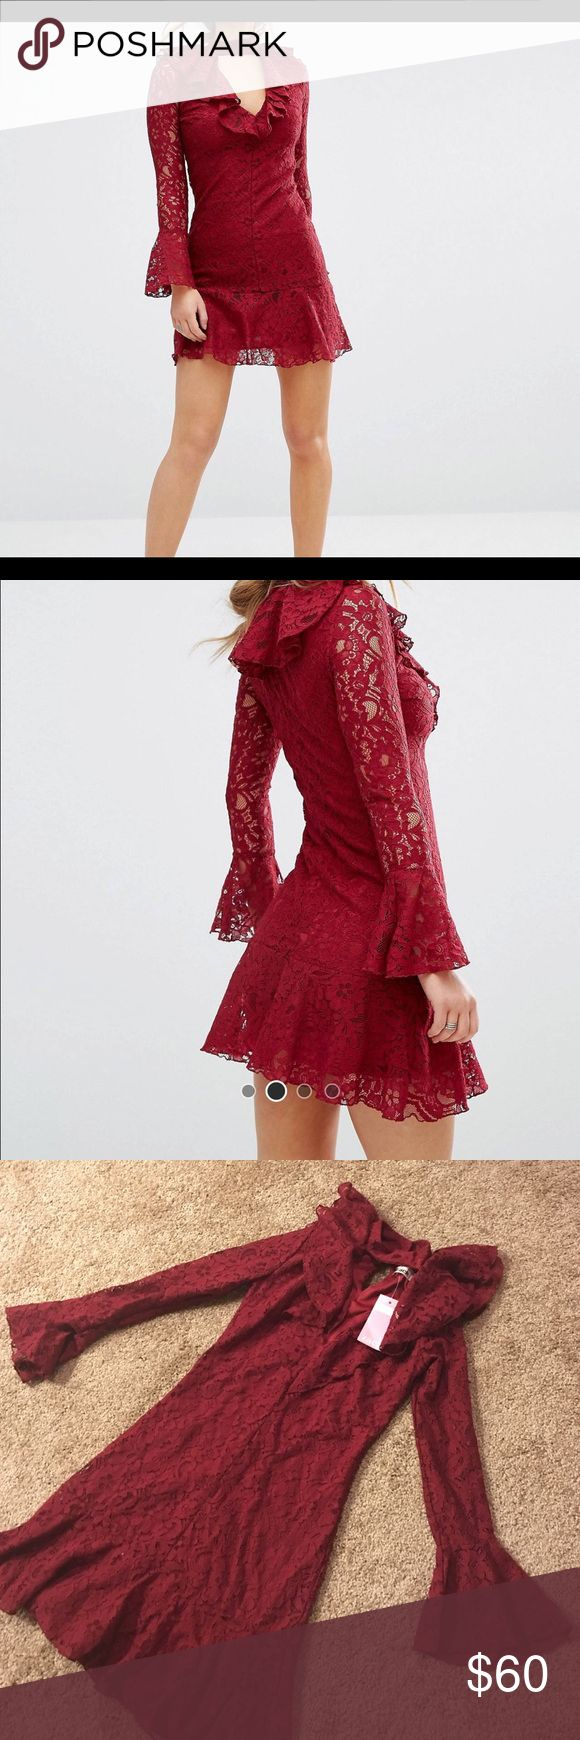 John Zack Petite High Neck All Over Lace Dress Gorgeous Valentine's Day dress! Would look great with a pair of chandelier earrings and strappy heels. Never been worn, tags still attached. John Zack Dresses Mini